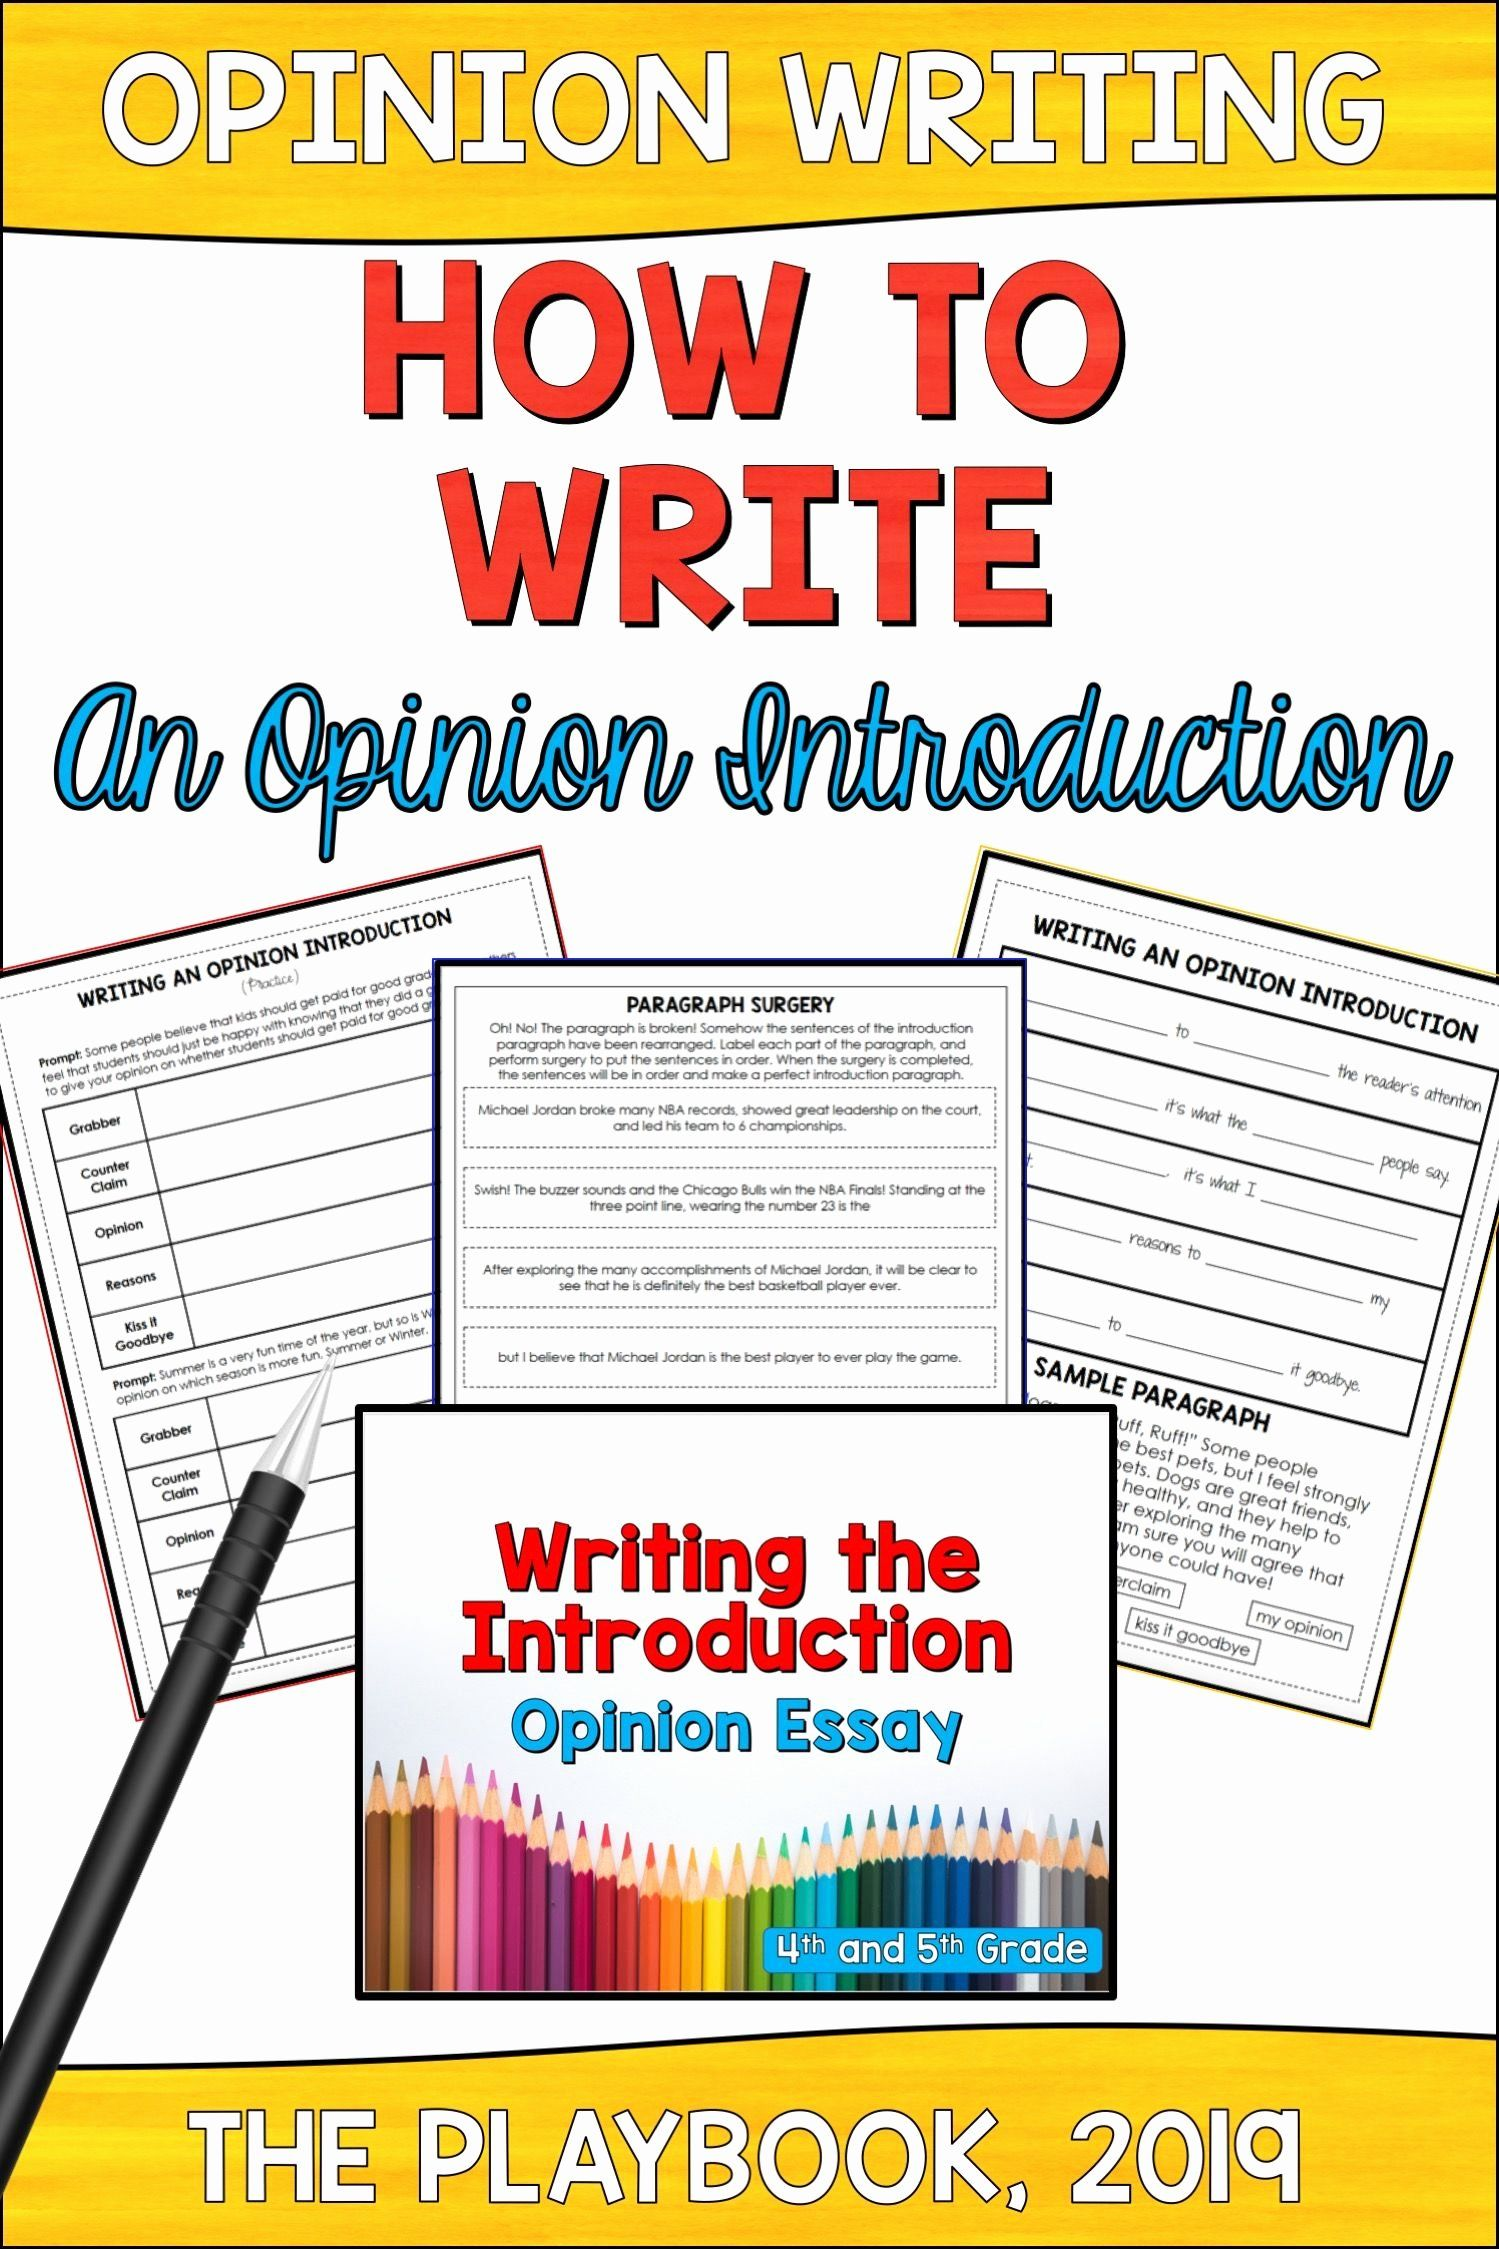 Azmerit Practice Worksheets Math Inspirational How To Write An Opinion Introduction Practices Worksheets Writing Introductions Opinion Writing Introduction